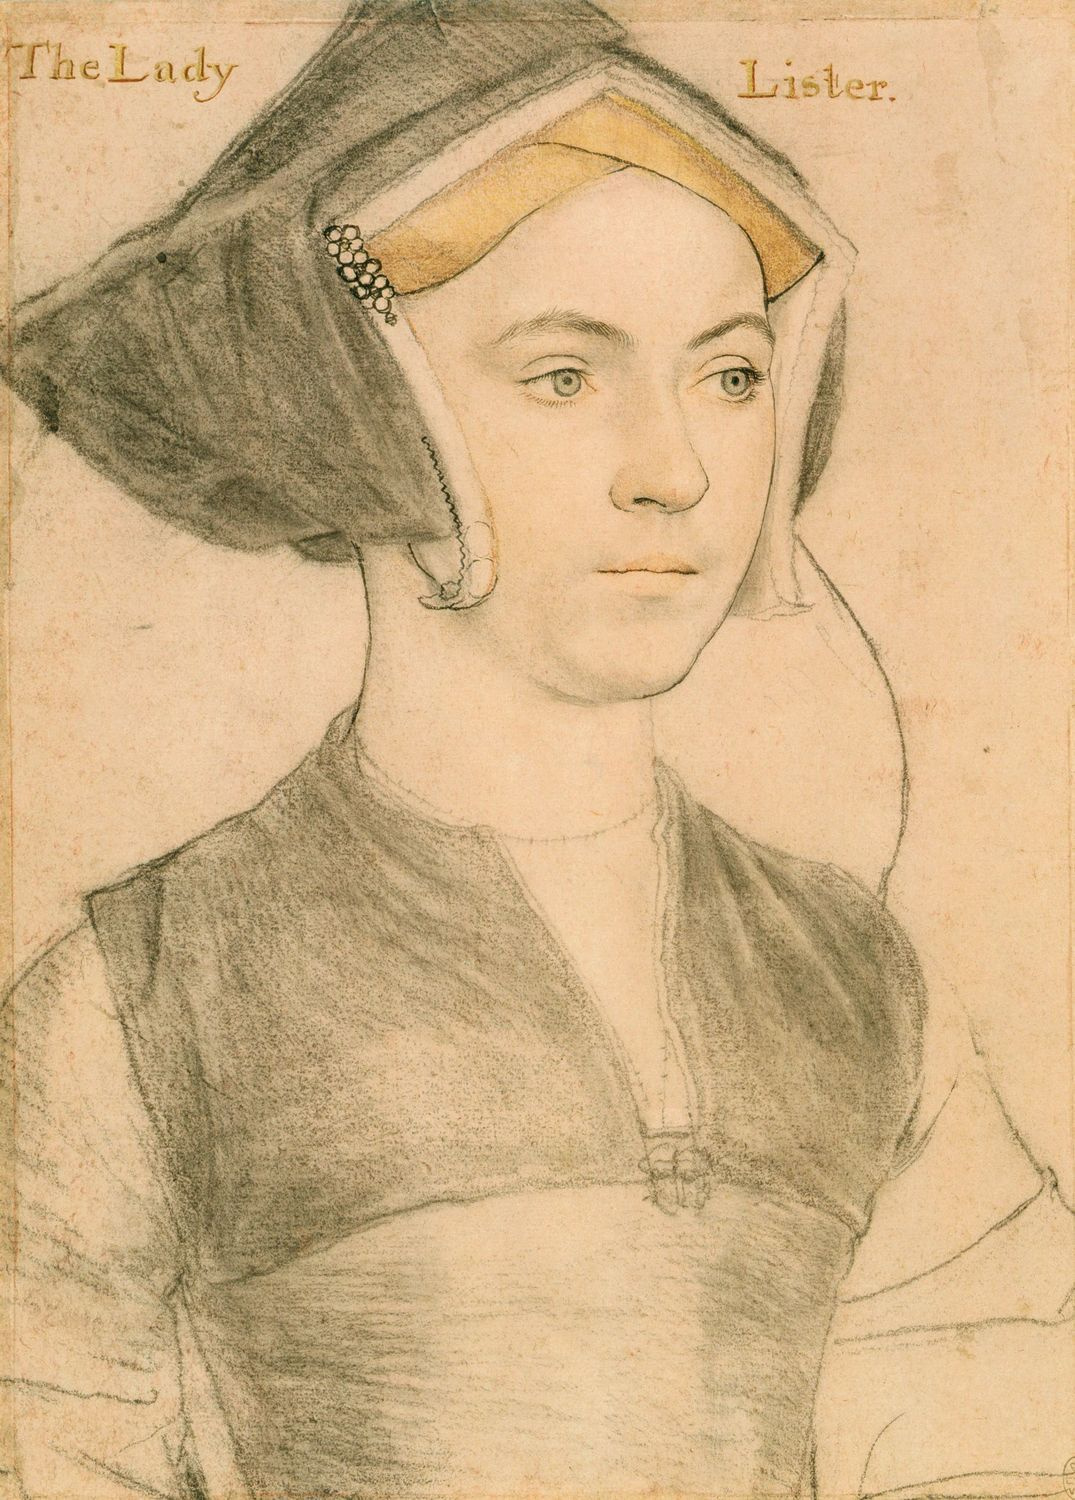 Portrait of Jane, Lady Lister. c.1532-43